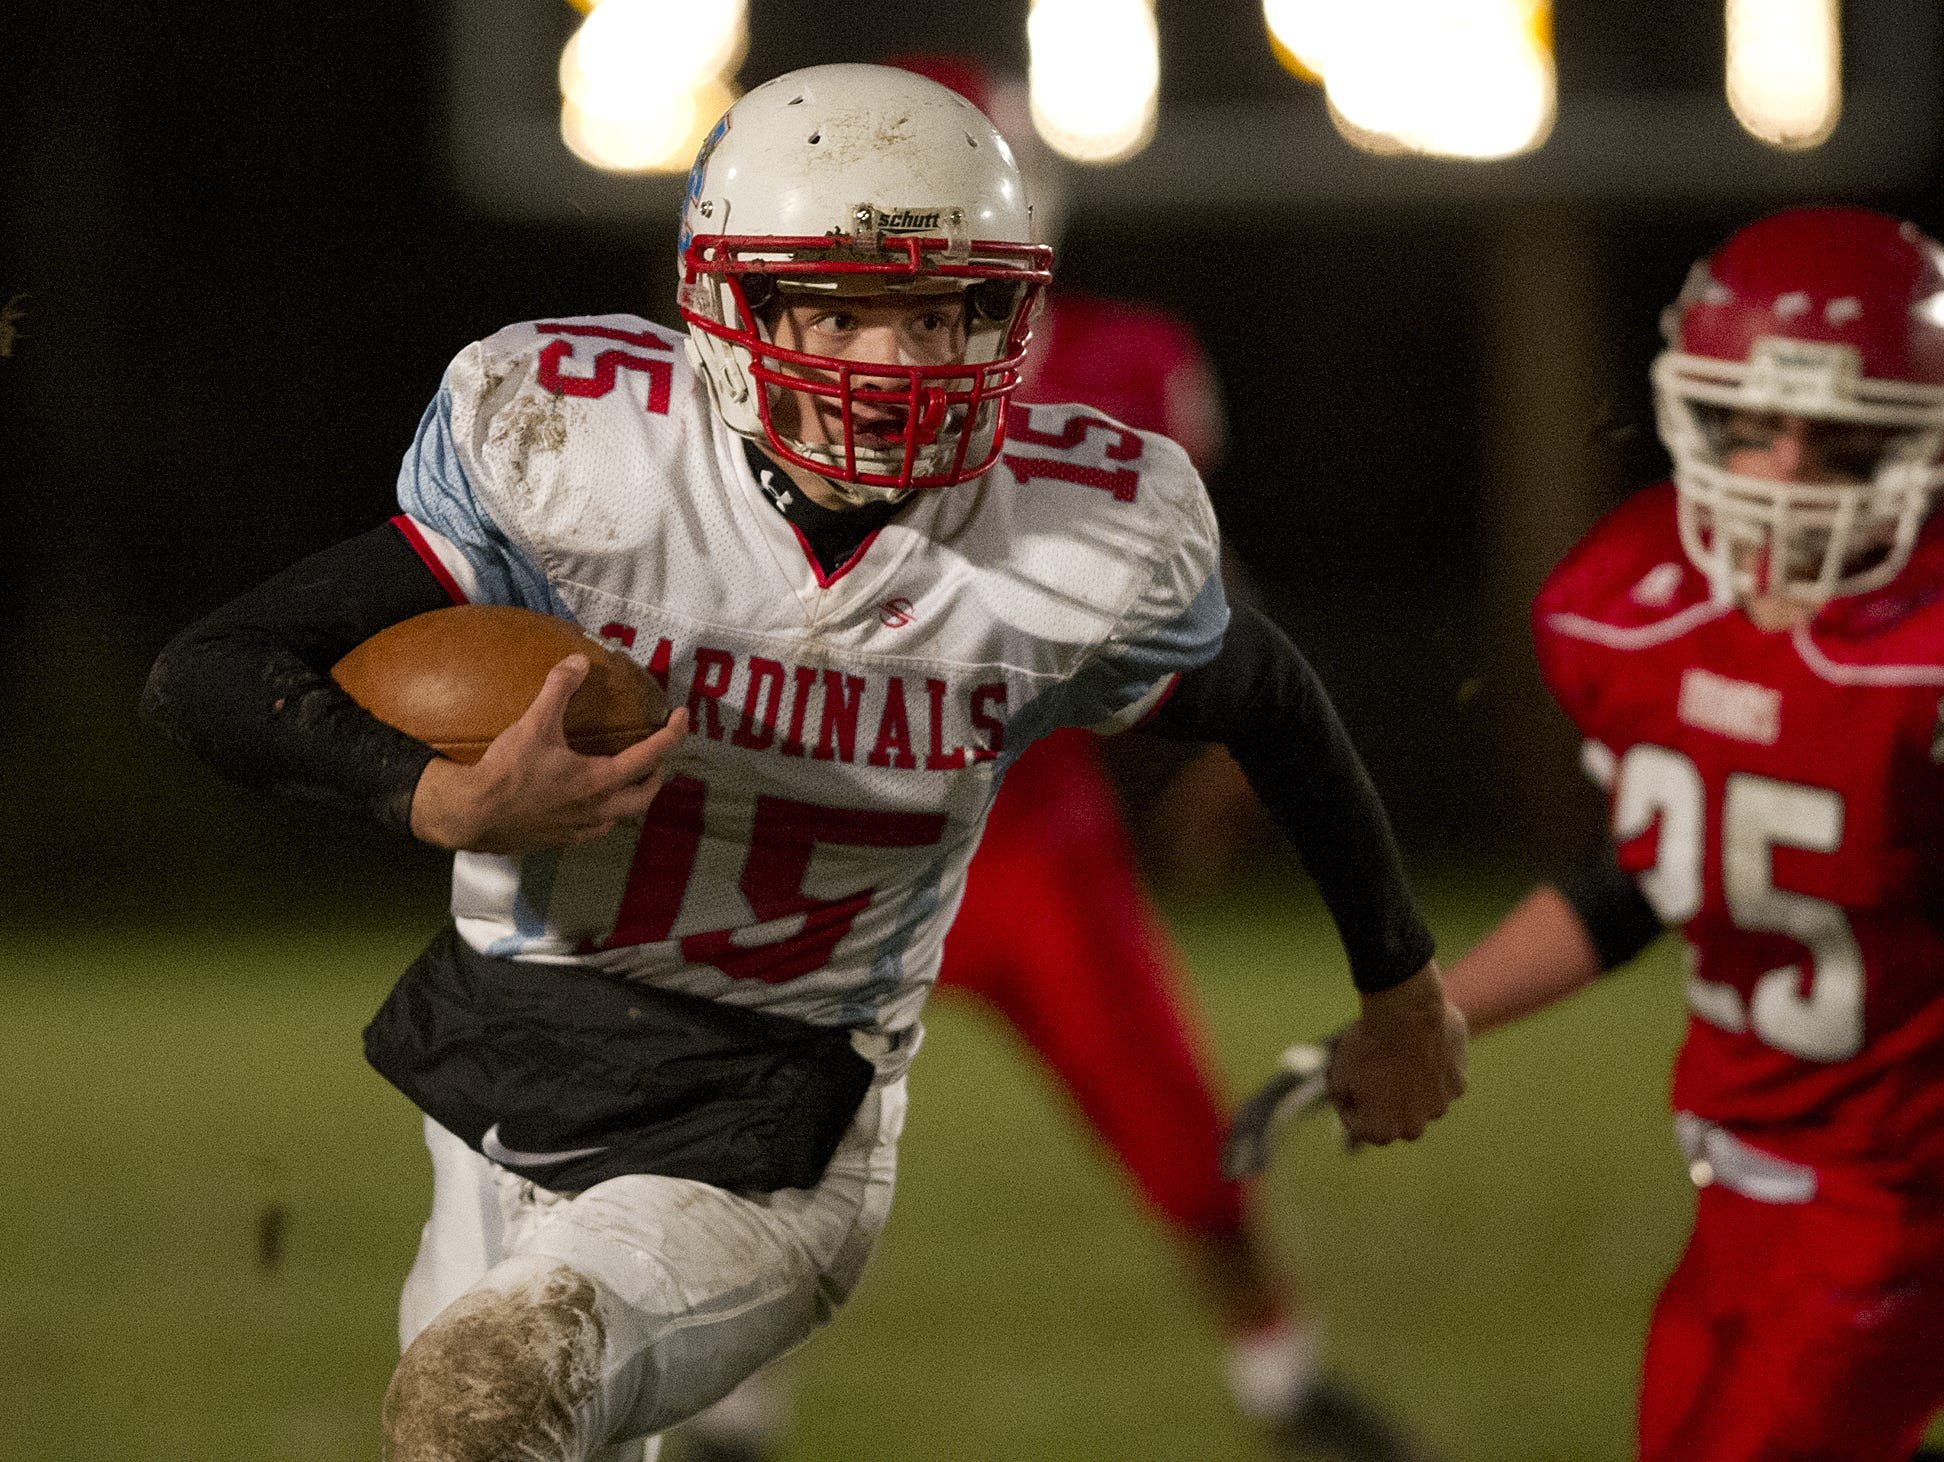 Newman Catholic quarterback Jake Gajewski is one of four finalists for the Win Brockmeyer Award. D.C. Everest's Stephen Paoli, Wausau East's Landon Krueger and Wausau West's Brady Lenz are also finaists for the award